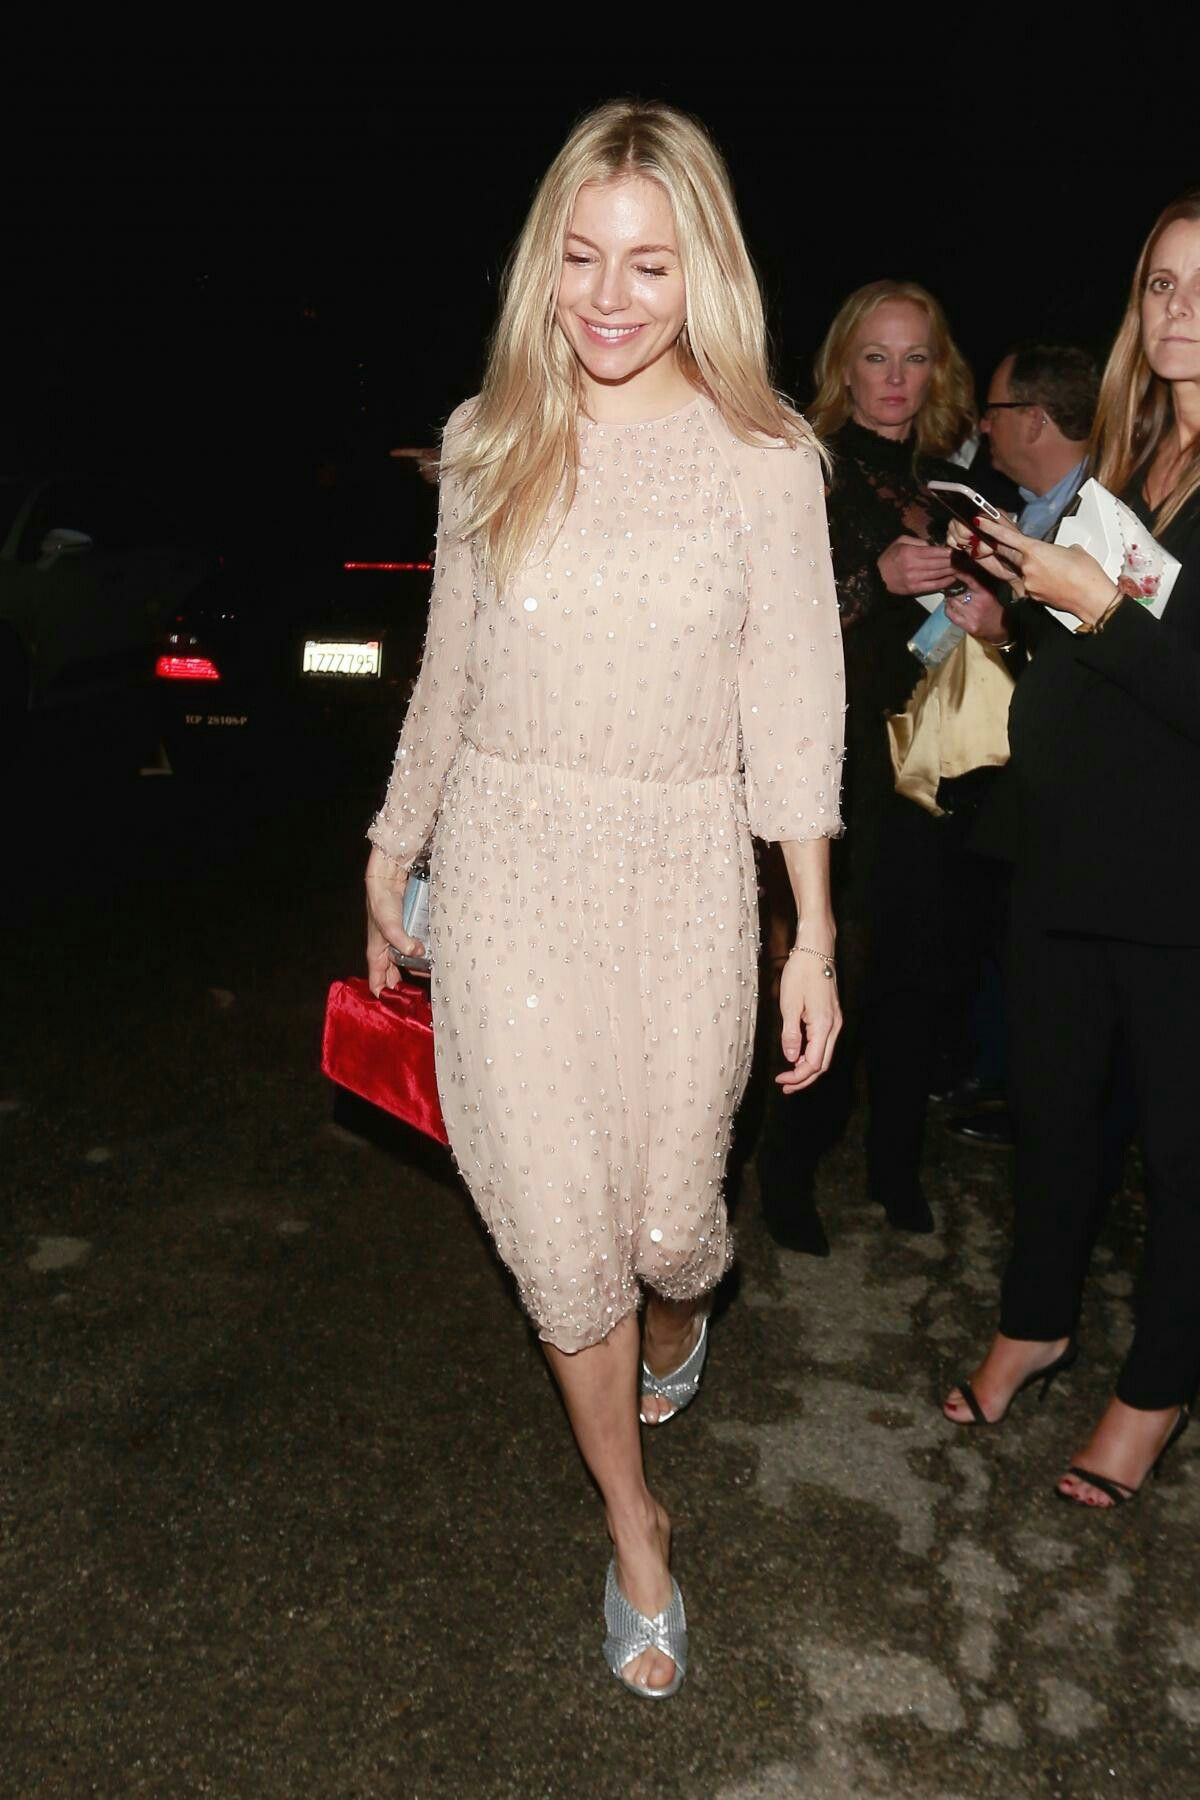 be511043d19 SiennaMiller  actress  americanactress  celebstyle  celebrety  style   fashion  hitgirl  outfit